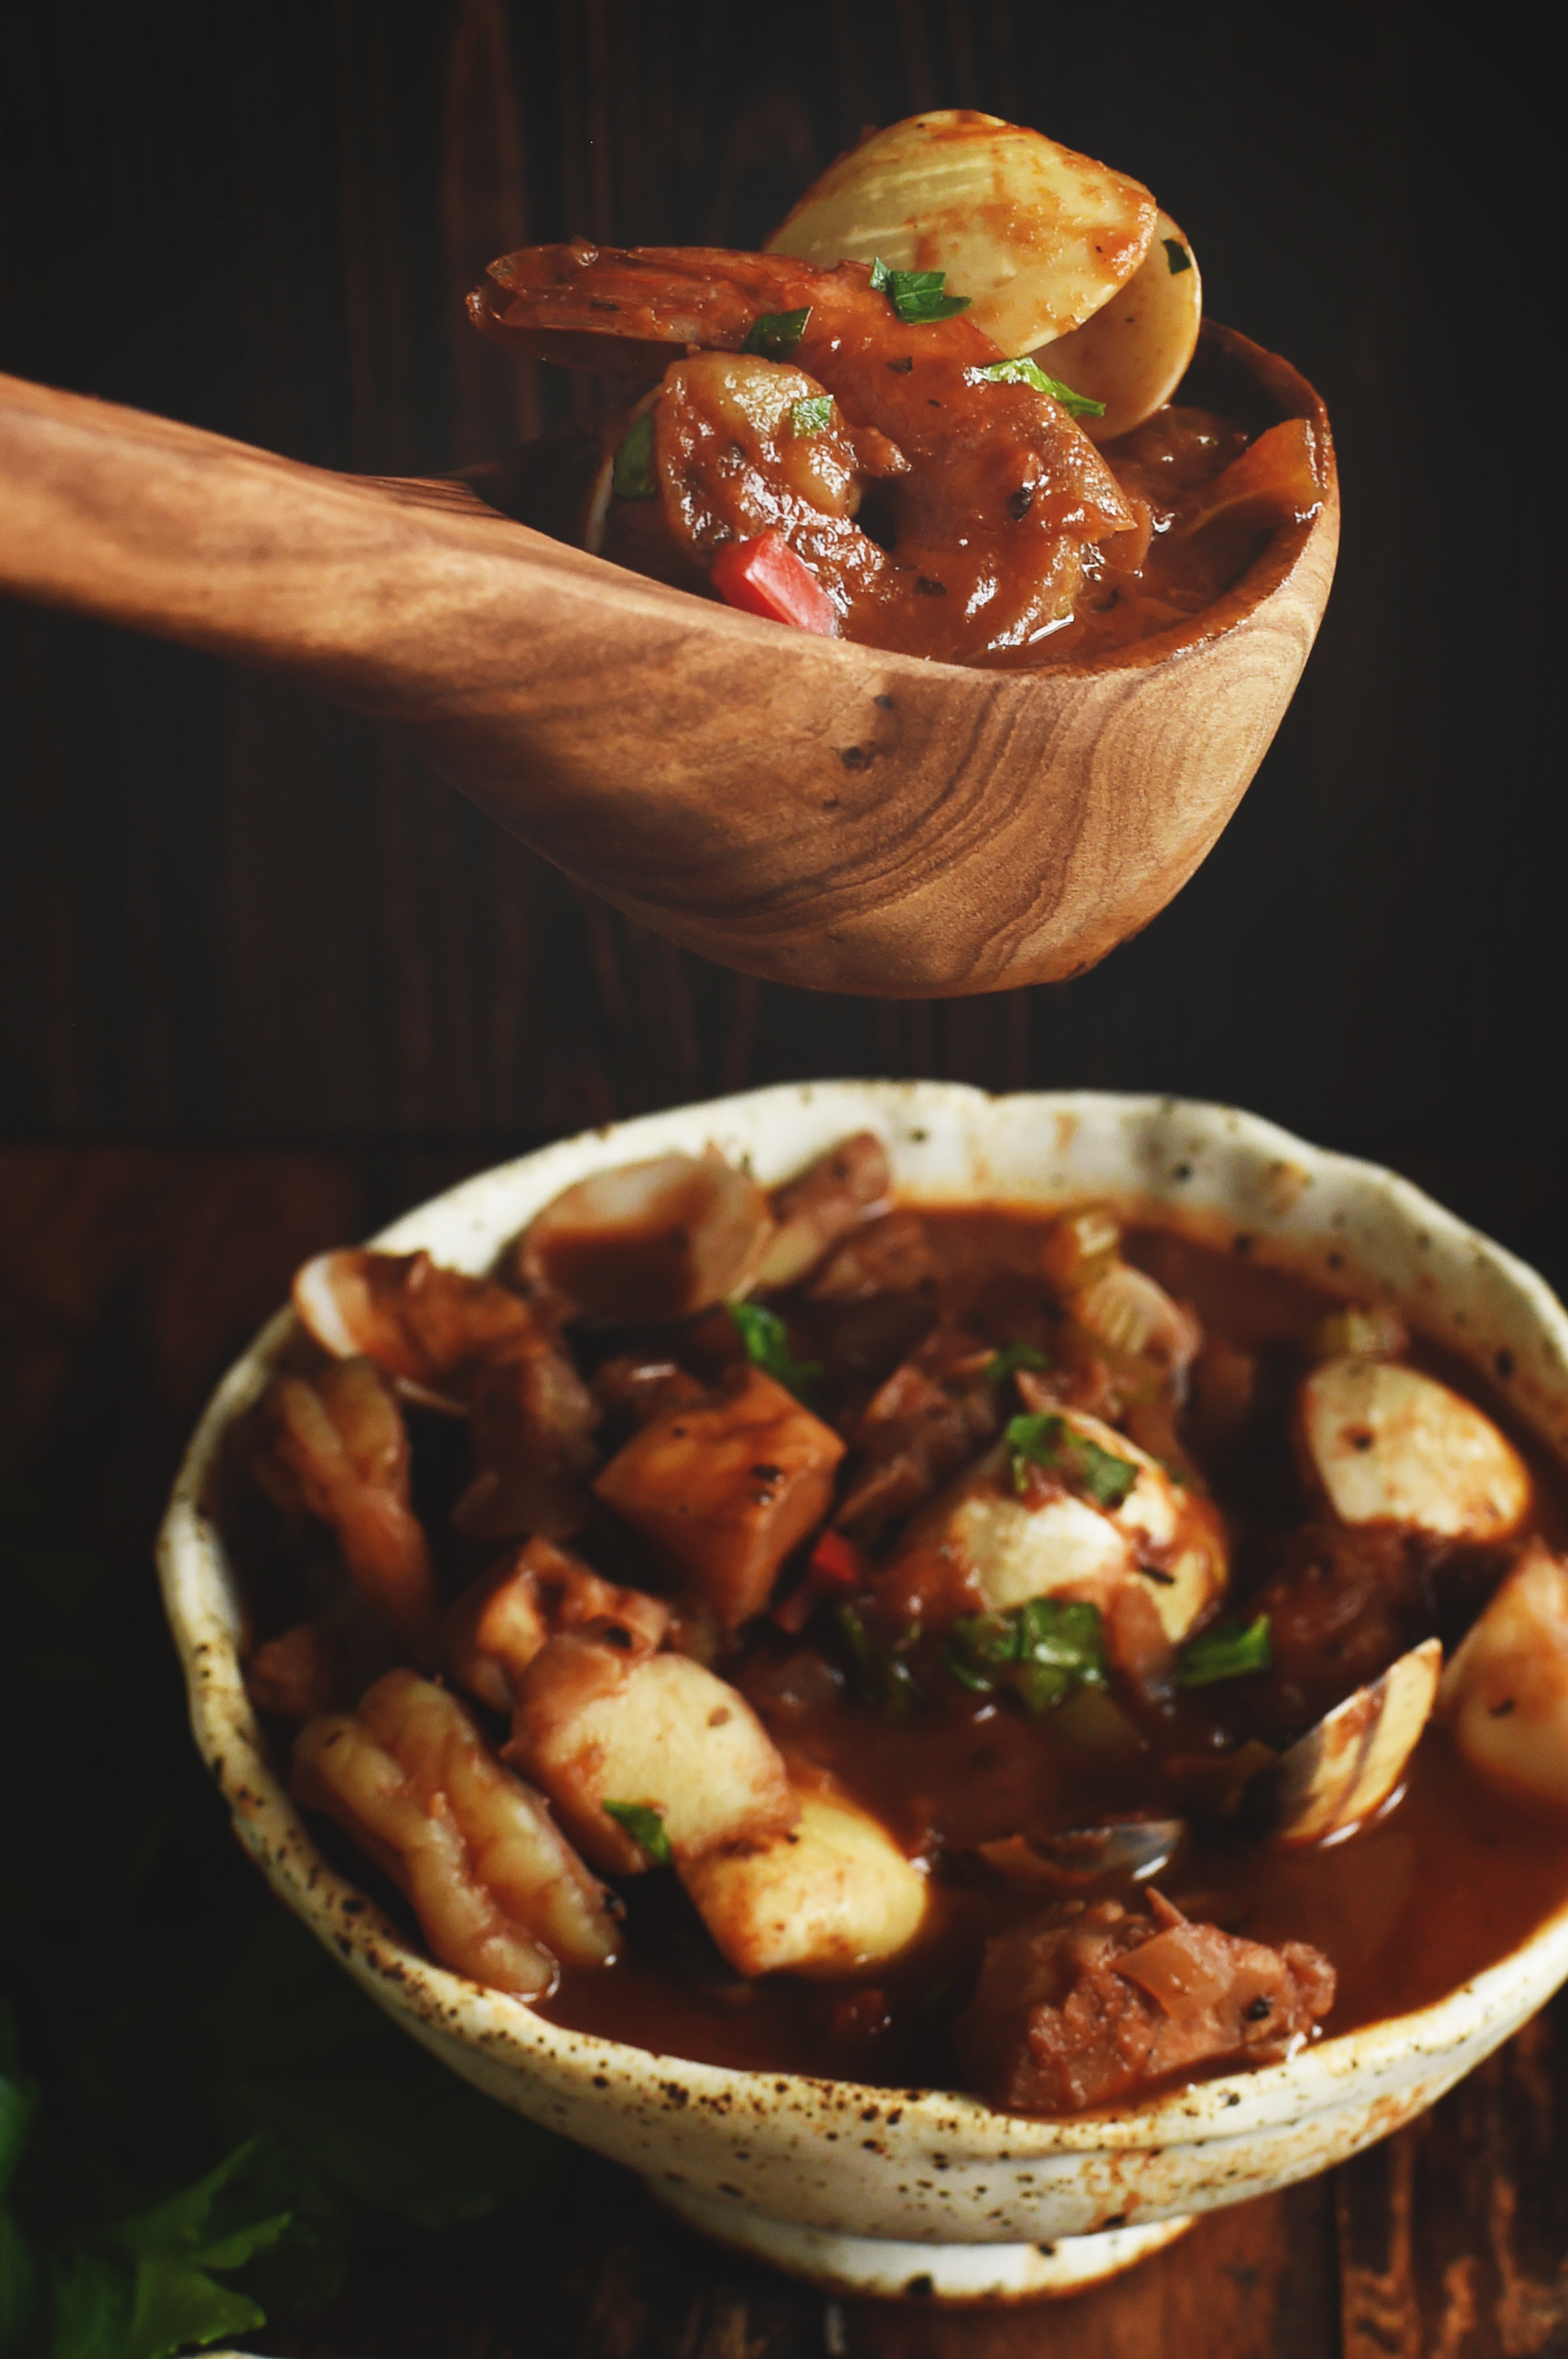 Cioppino Seafood Stew being spooned into a bowl.